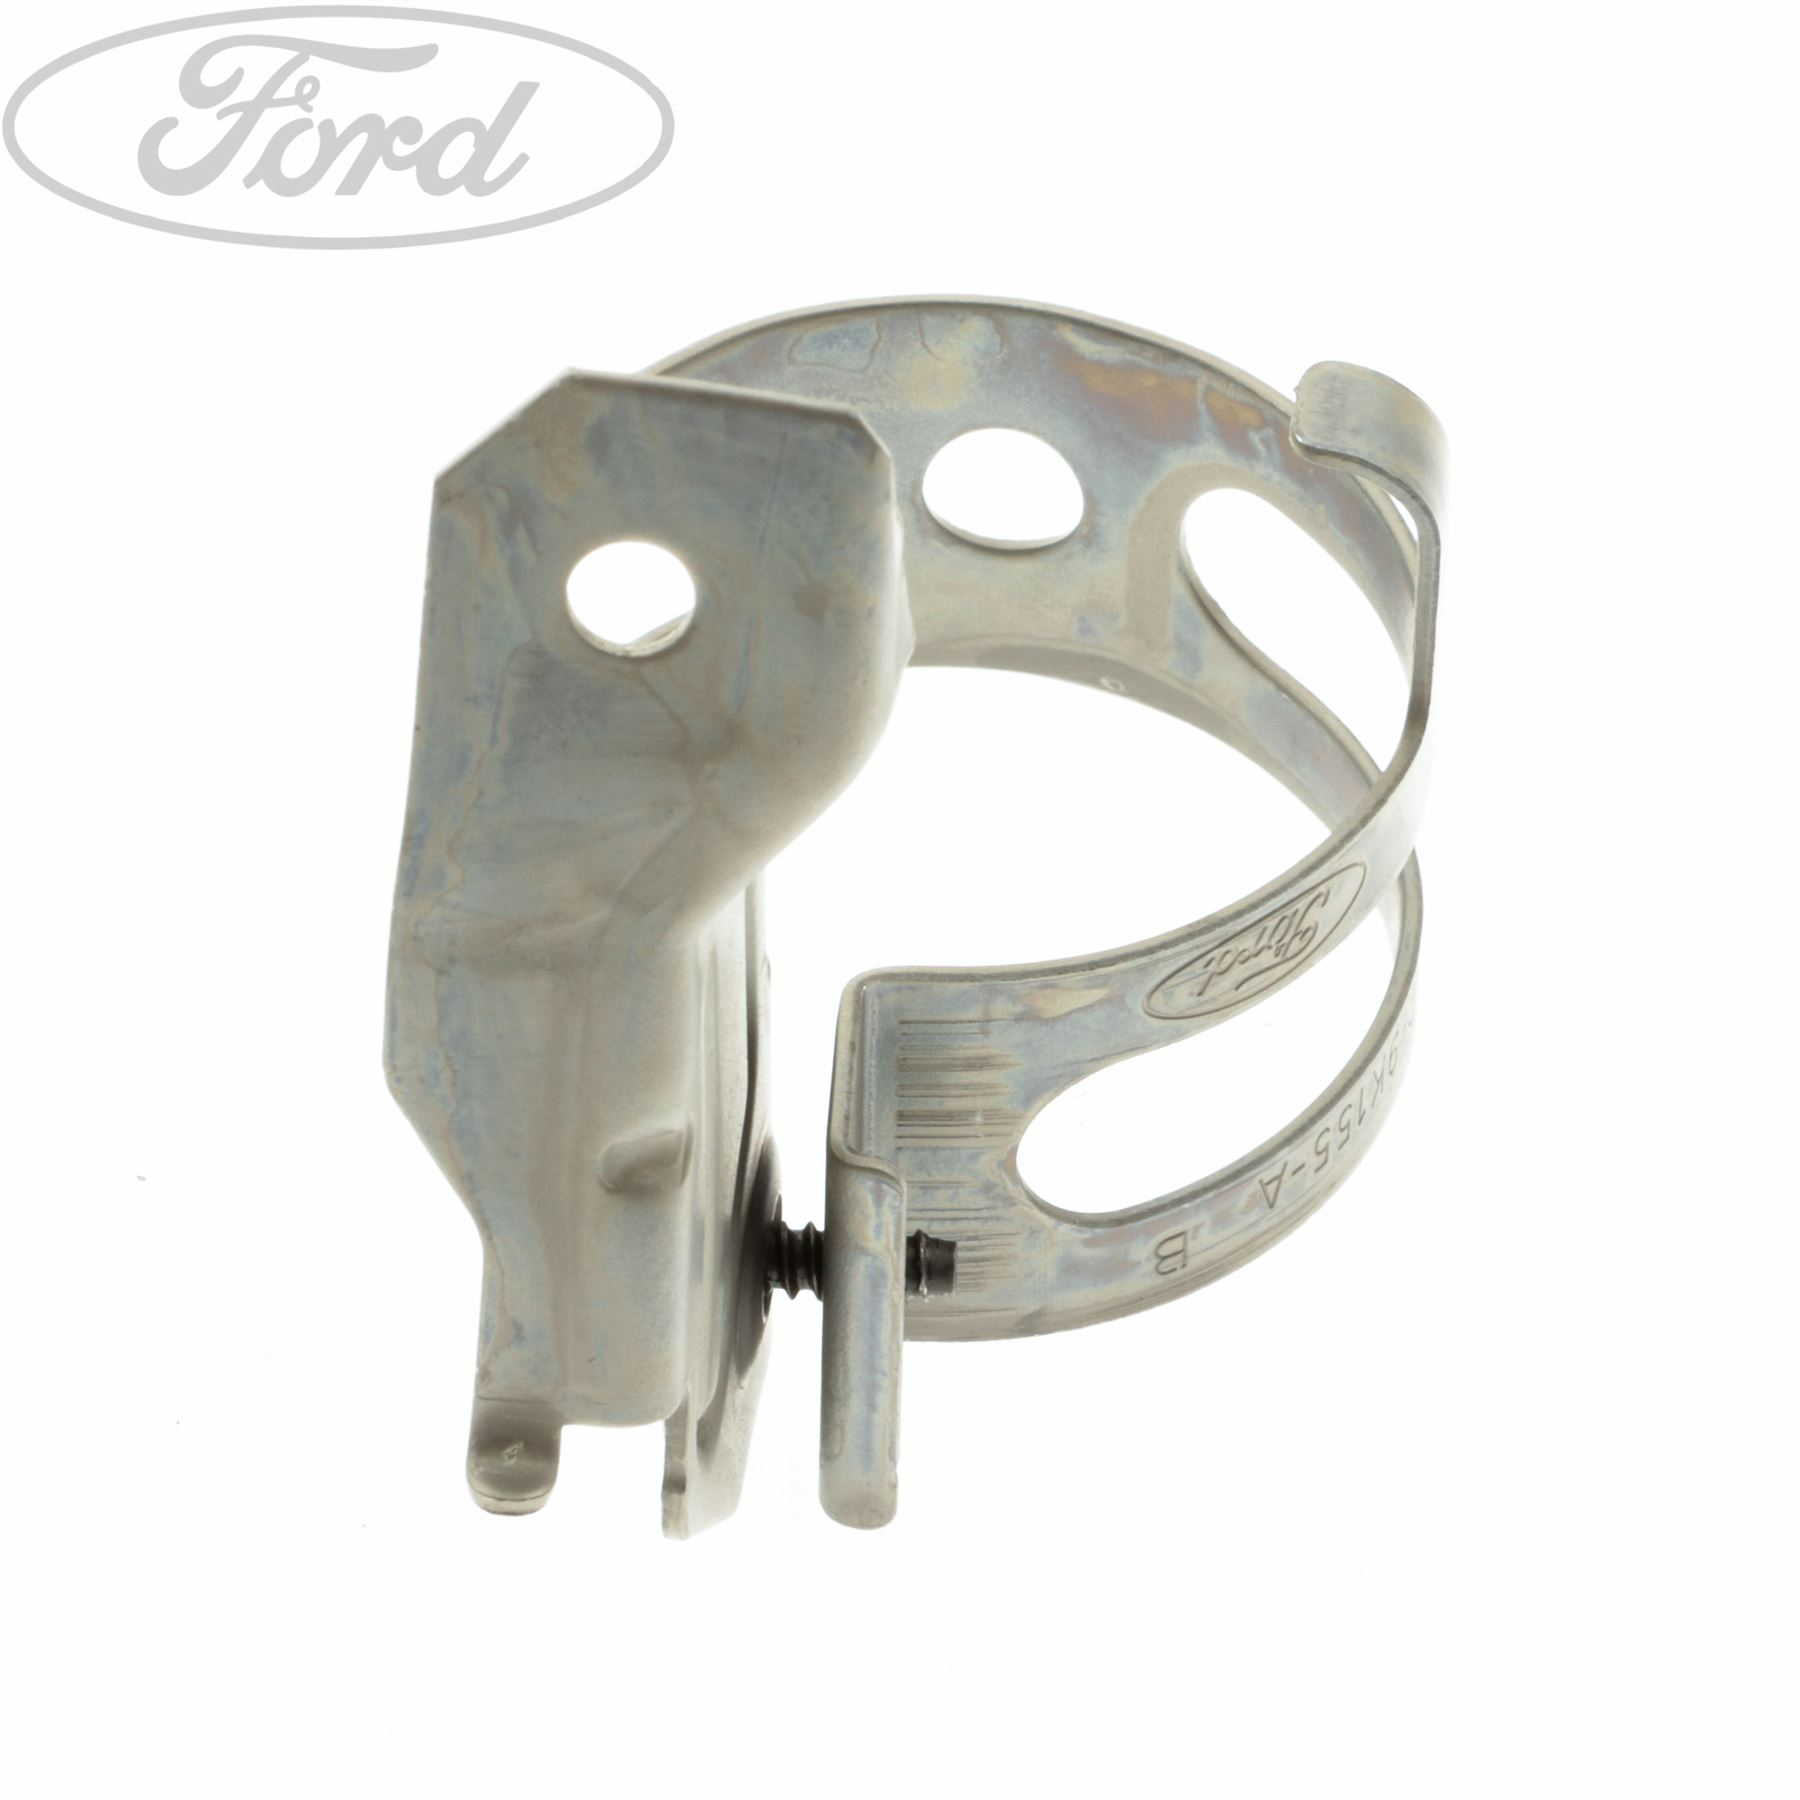 hight resolution of details about genuine ford focus mk1 1 6 1 8 2 0 zetec e zetec s fuel filter bracket 1212745